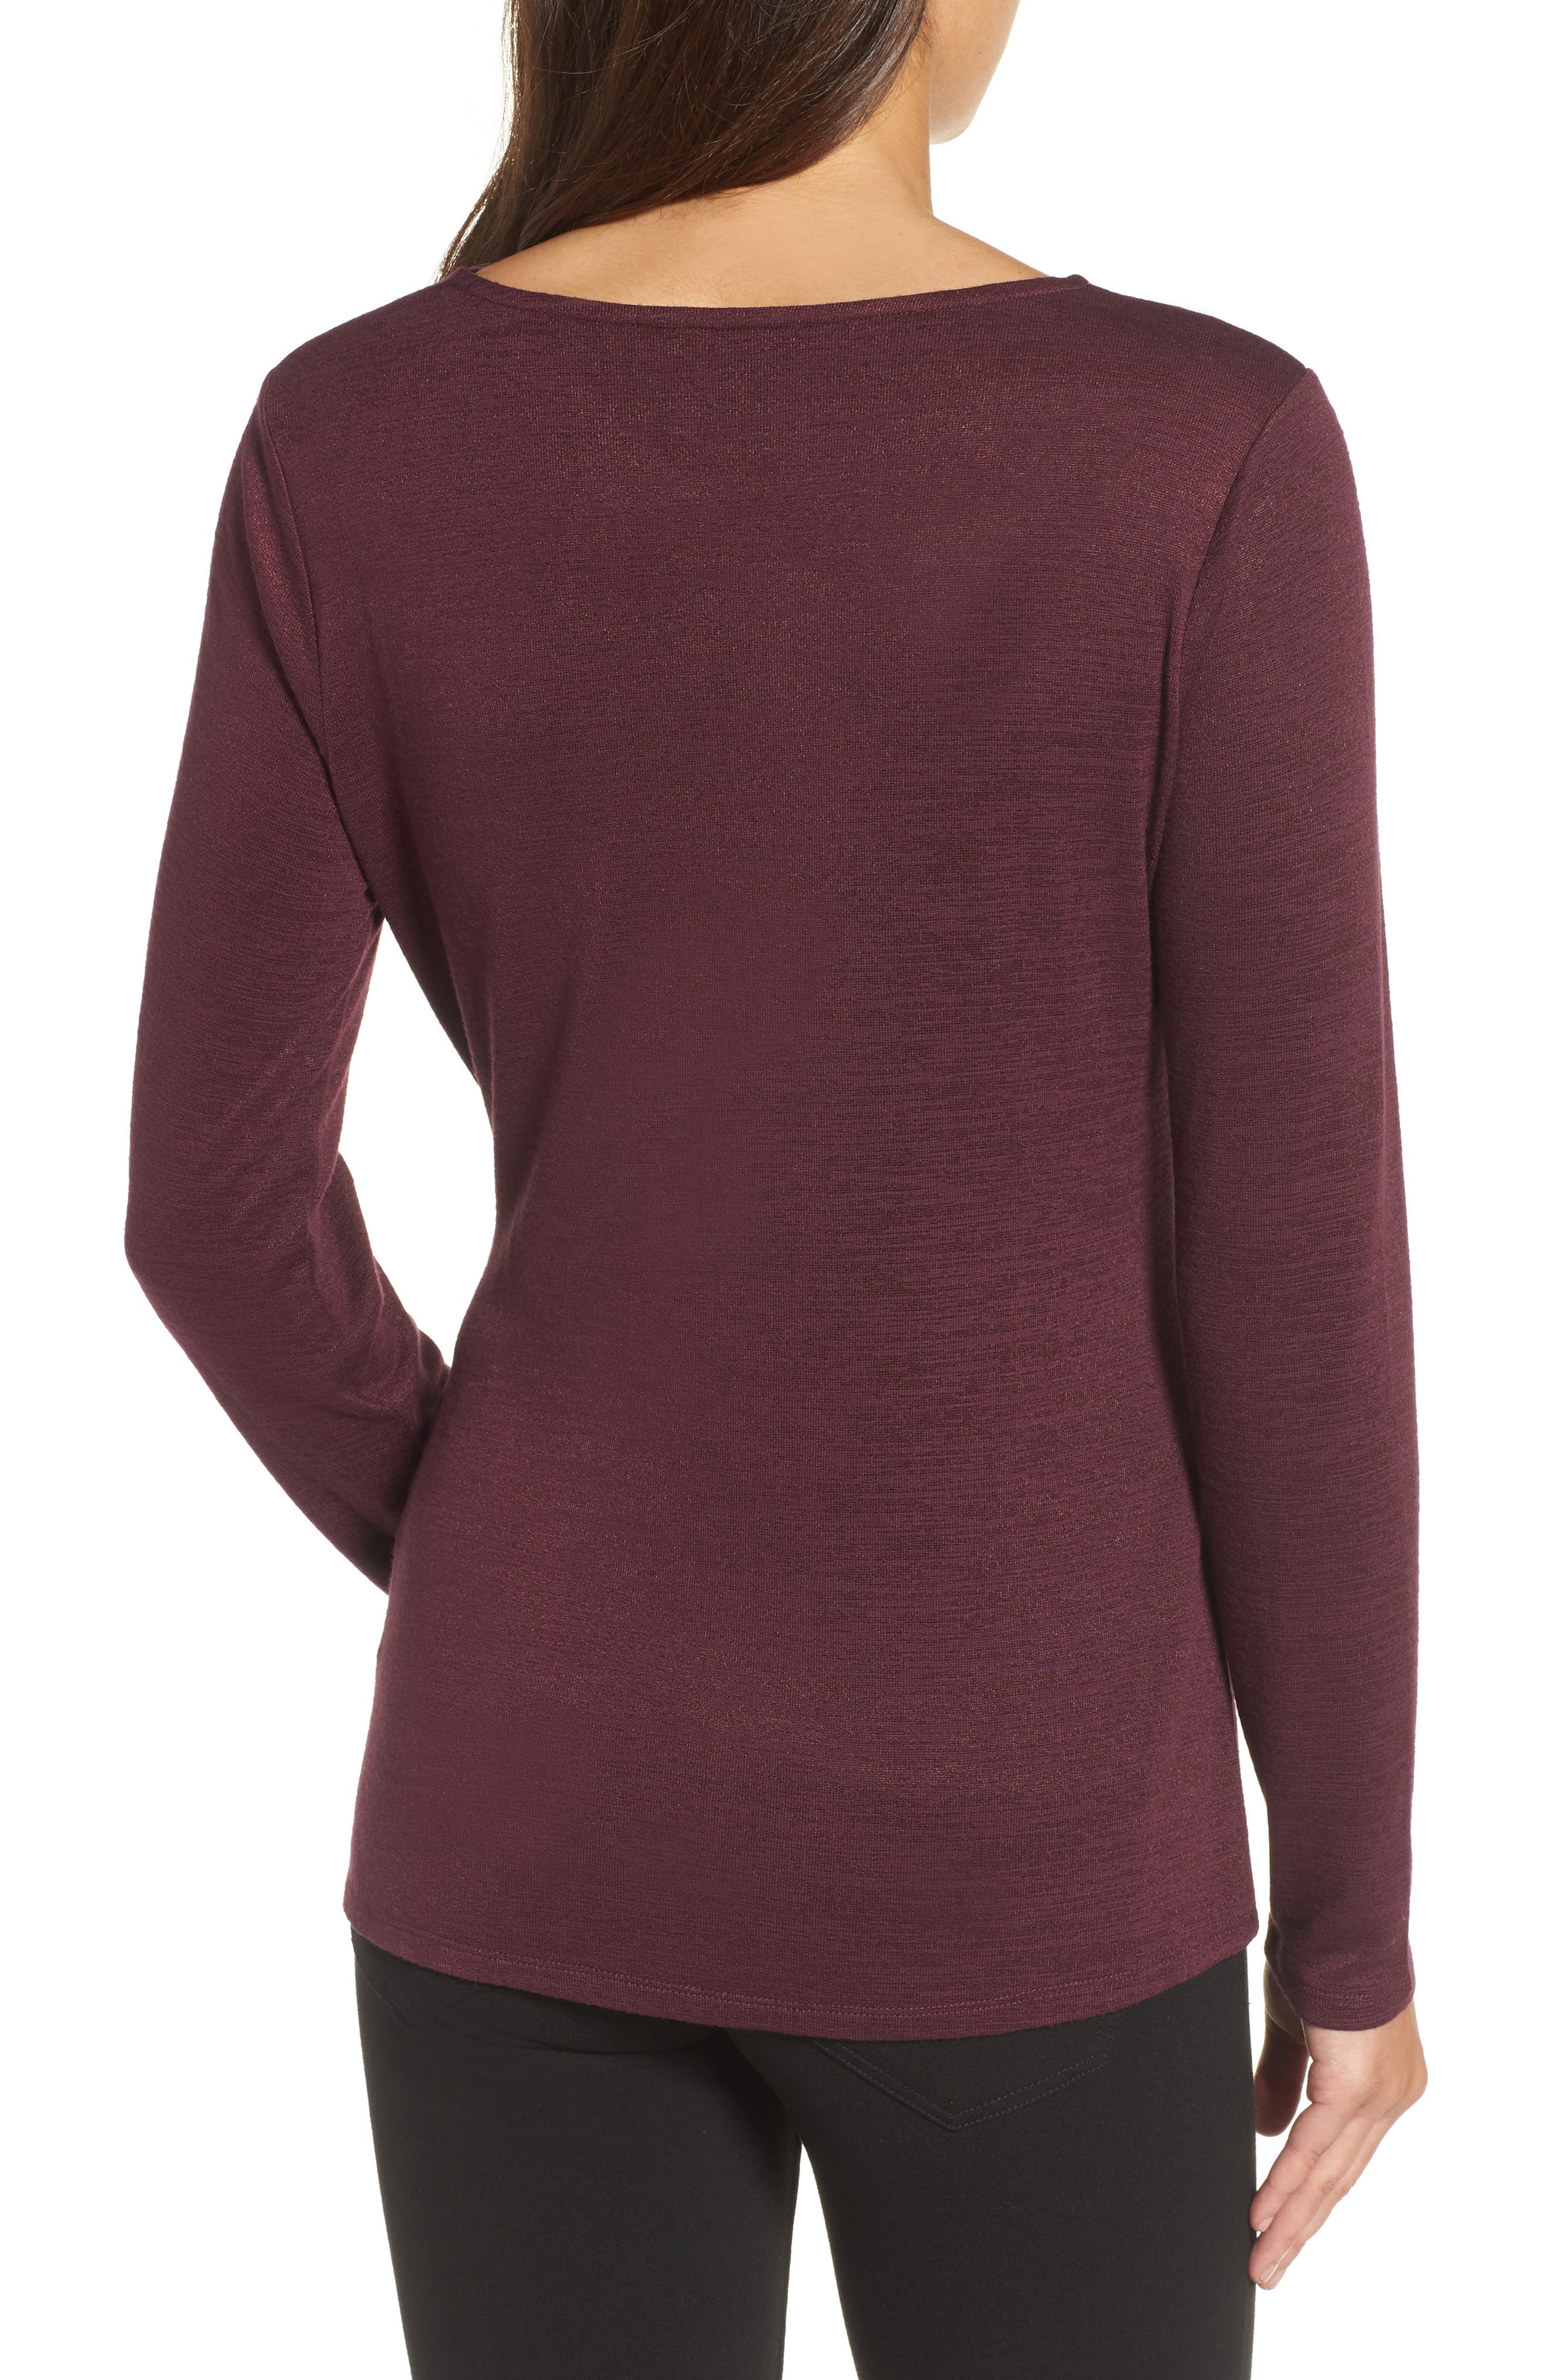 Every Occasion Drape Top,                             Alternate thumbnail 8, color,